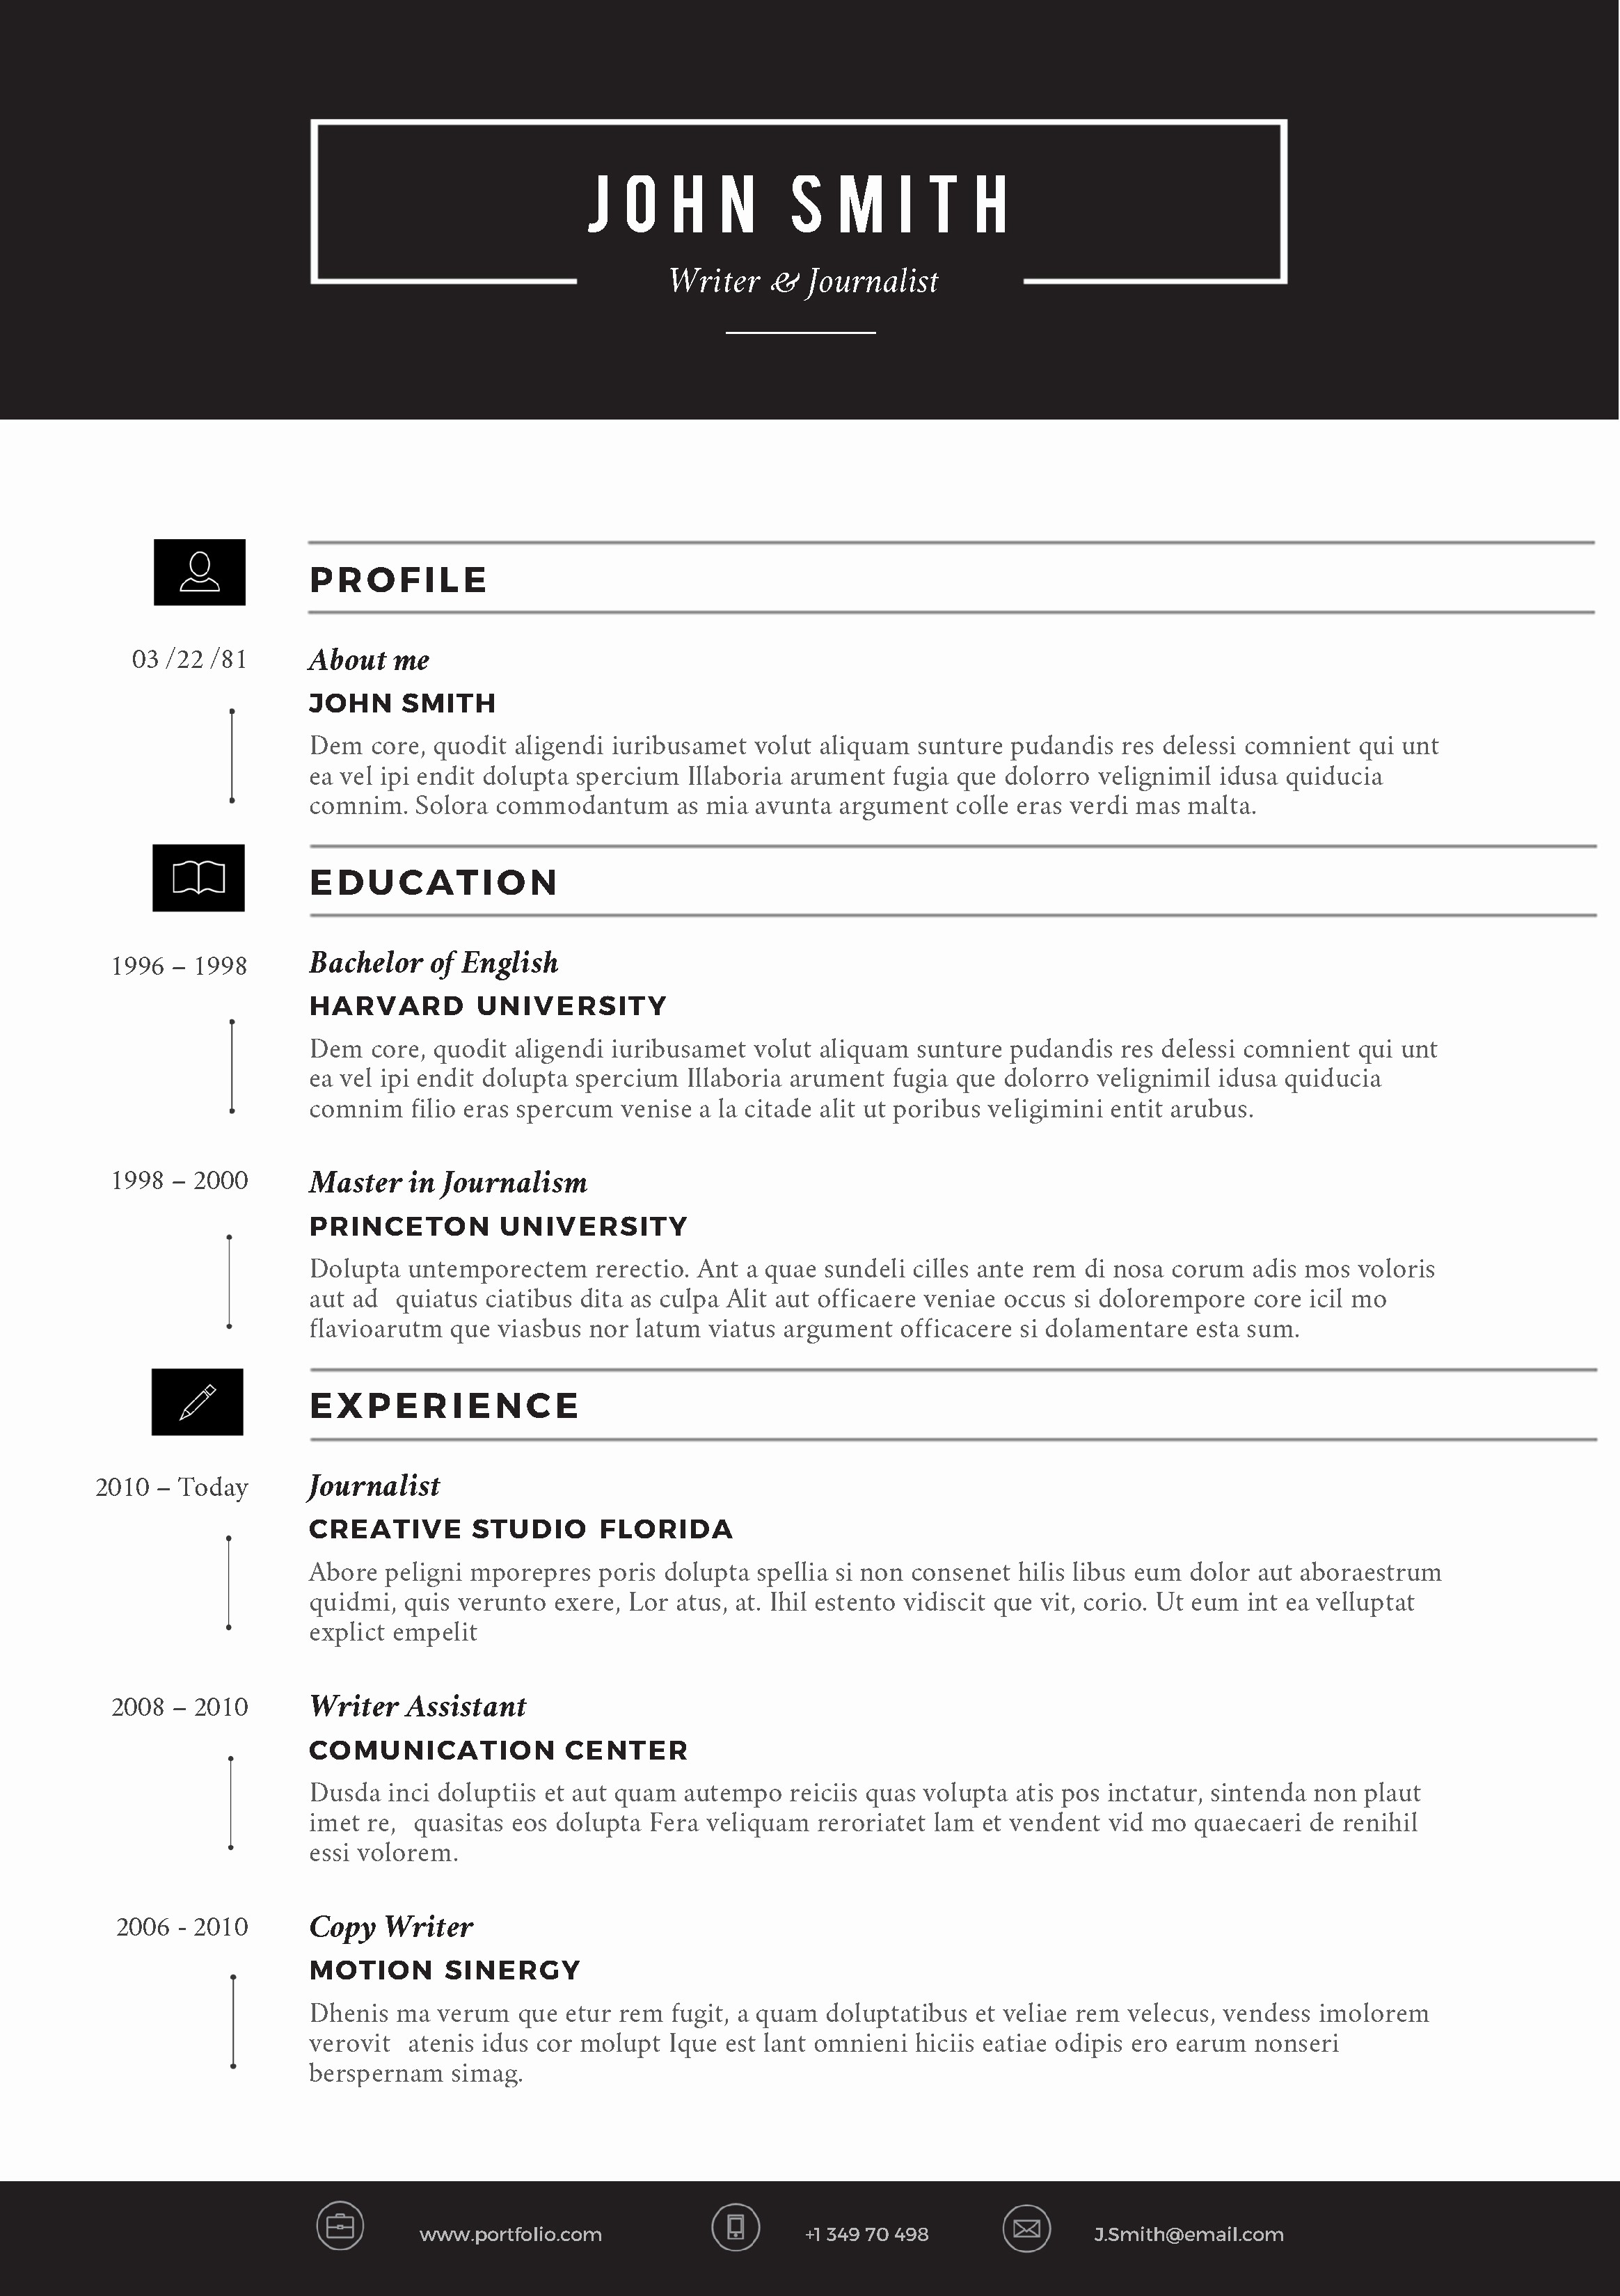 Ms Word Resume Templates Free Awesome Cvfolio Best 10 Resume Templates for Microsoft Word